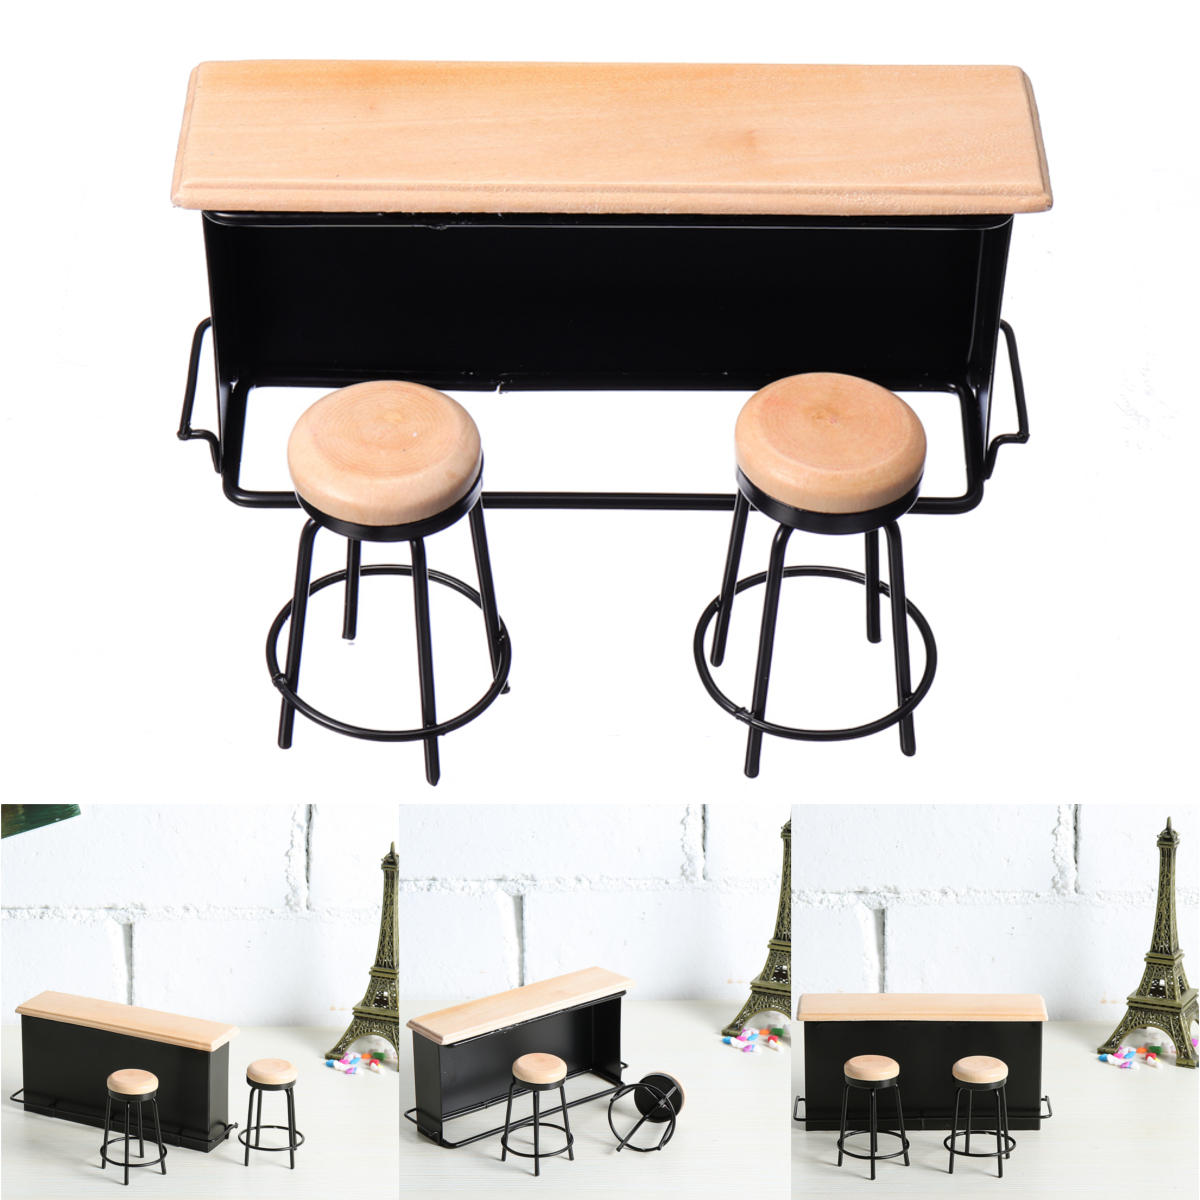 Doll House Miniature Taproom Bar Counter With Two Stools 1 12 Scale Model Toys Cod